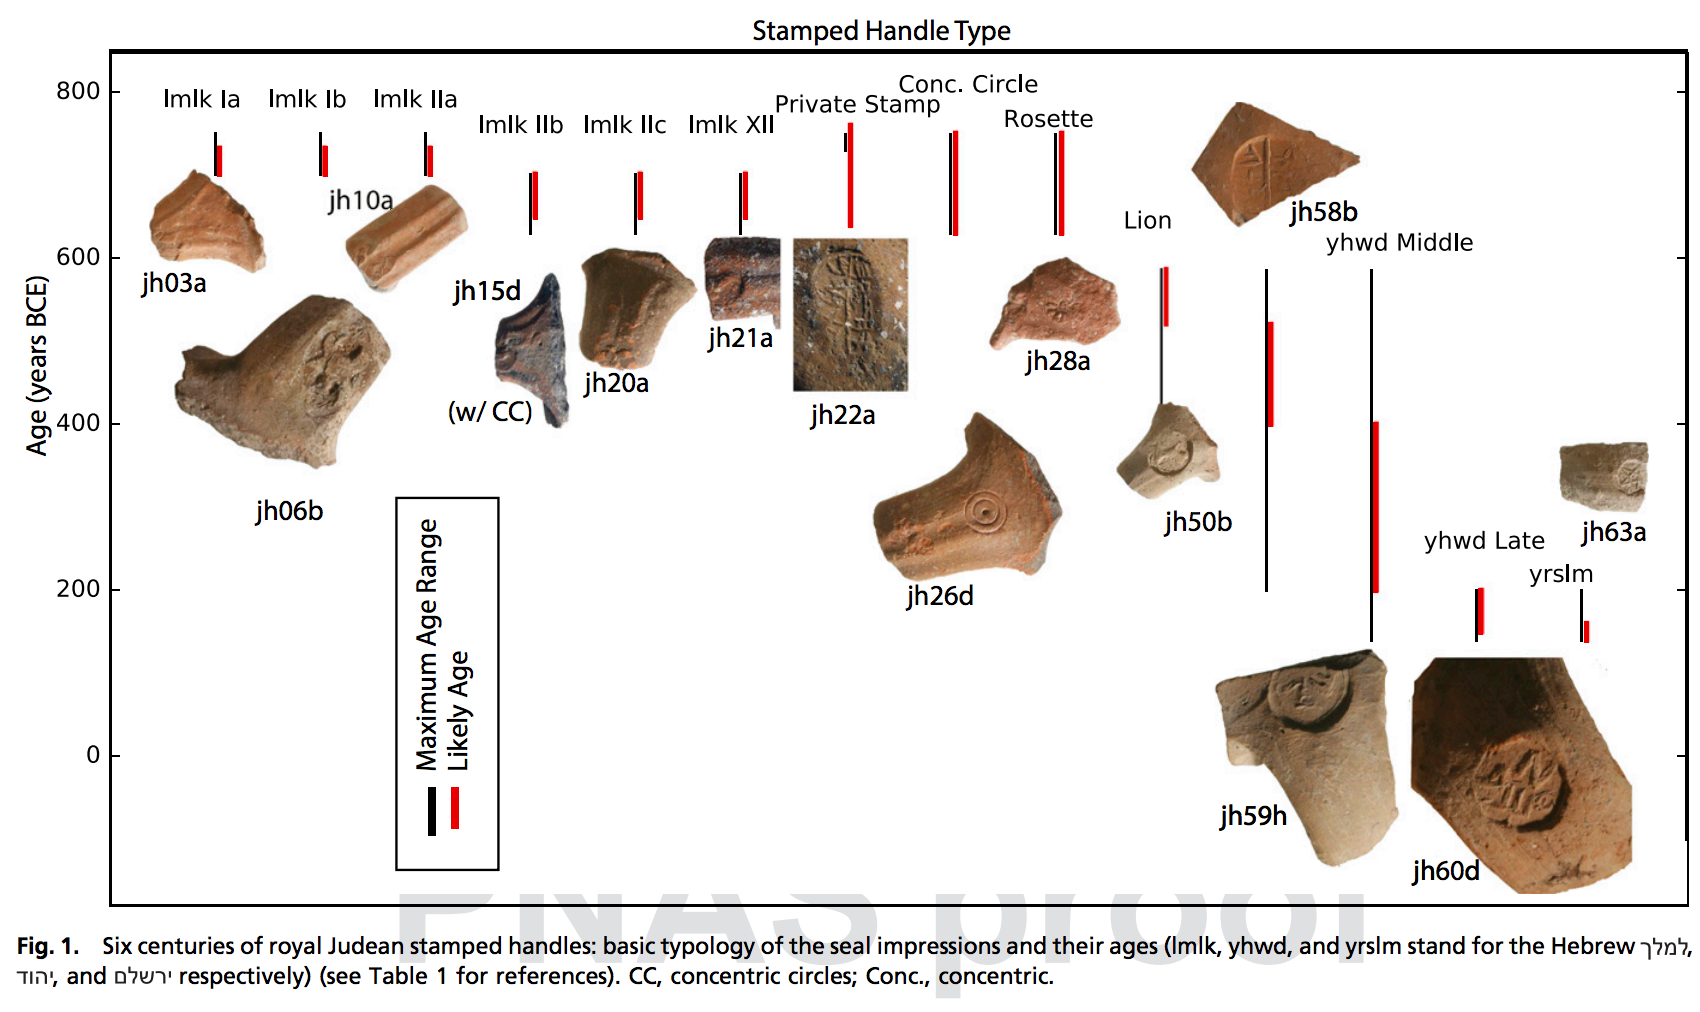 In this infographic, you can see which jar handle stamps are associated with which historical periods in Judah.